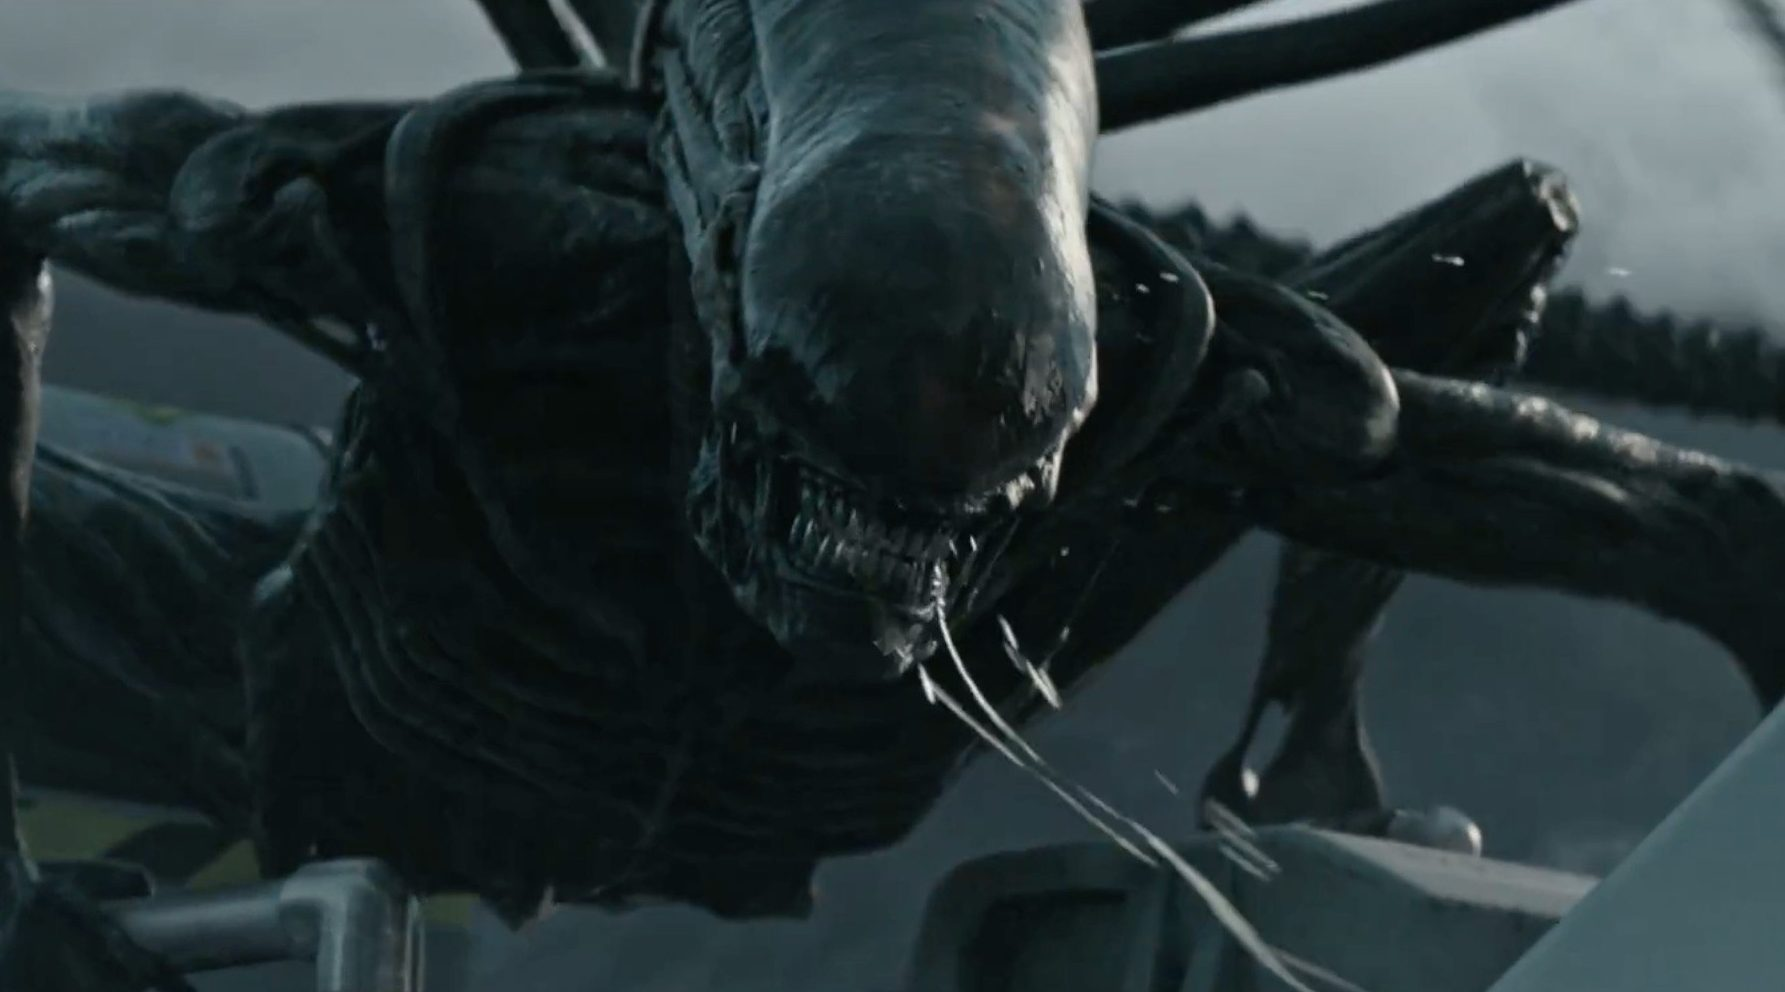 Alien: Covenant's horrific death scenes are enough to make it scary